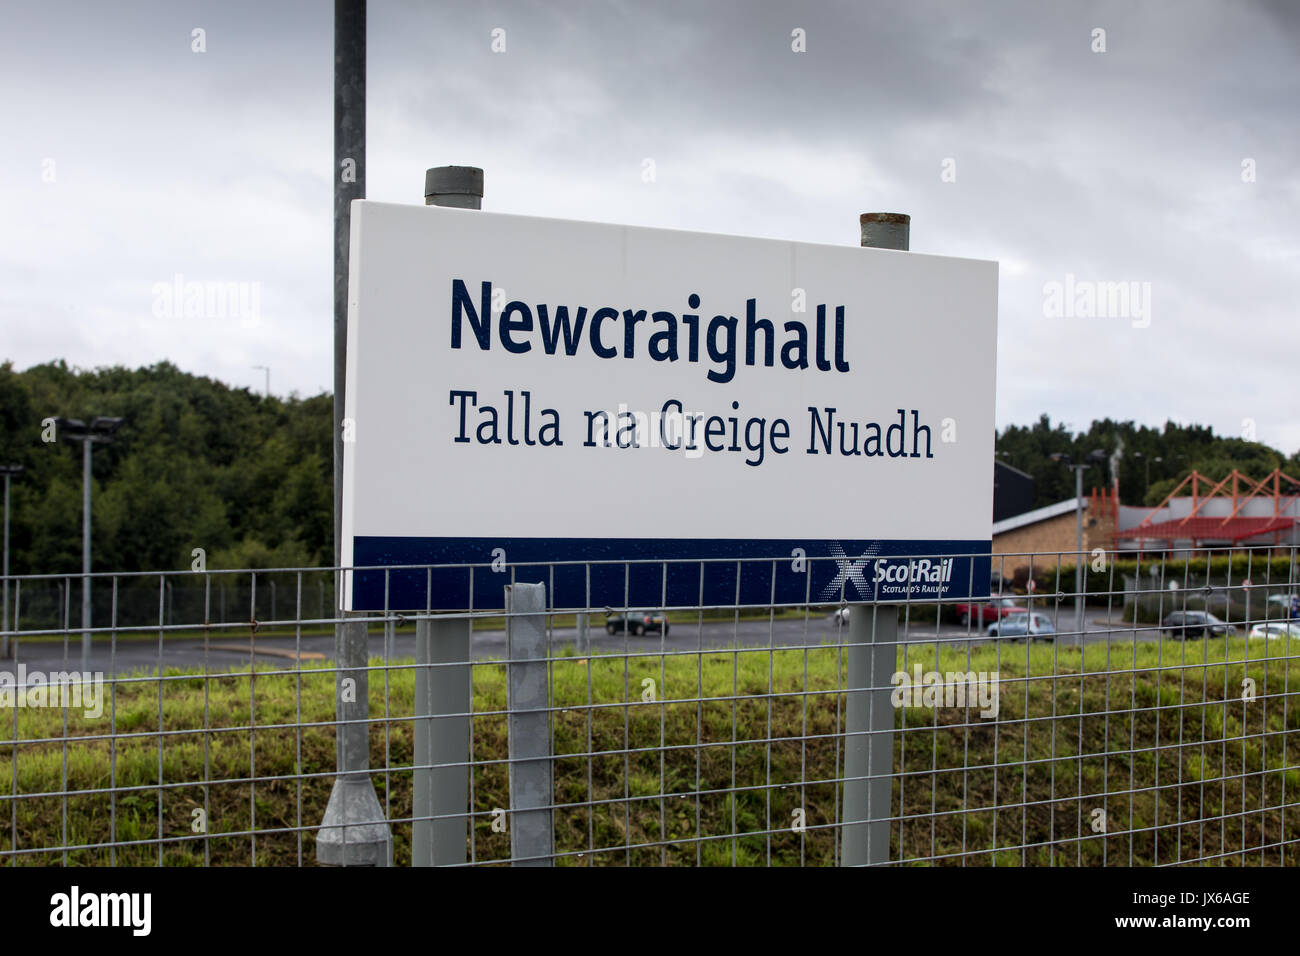 Newcraighall train station in the outskirts of Edinburgh - Stock Image